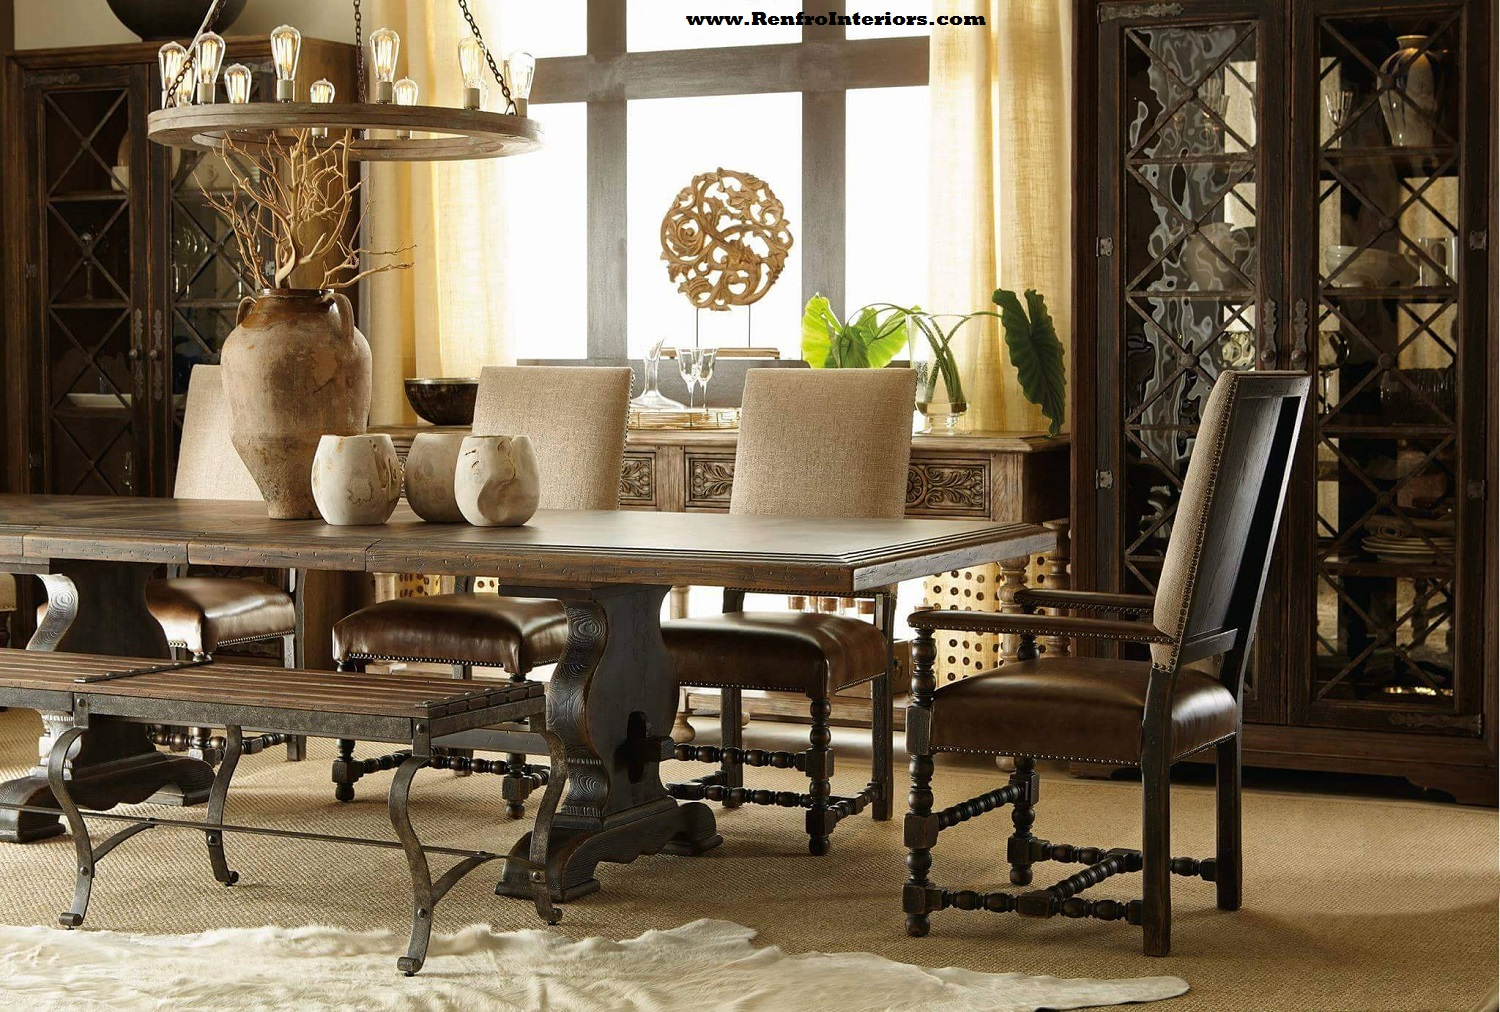 Etonnant Maitland Smith Specializes In Fine Home Furnishings And Accessories,  Including Fine Living Room Furniture